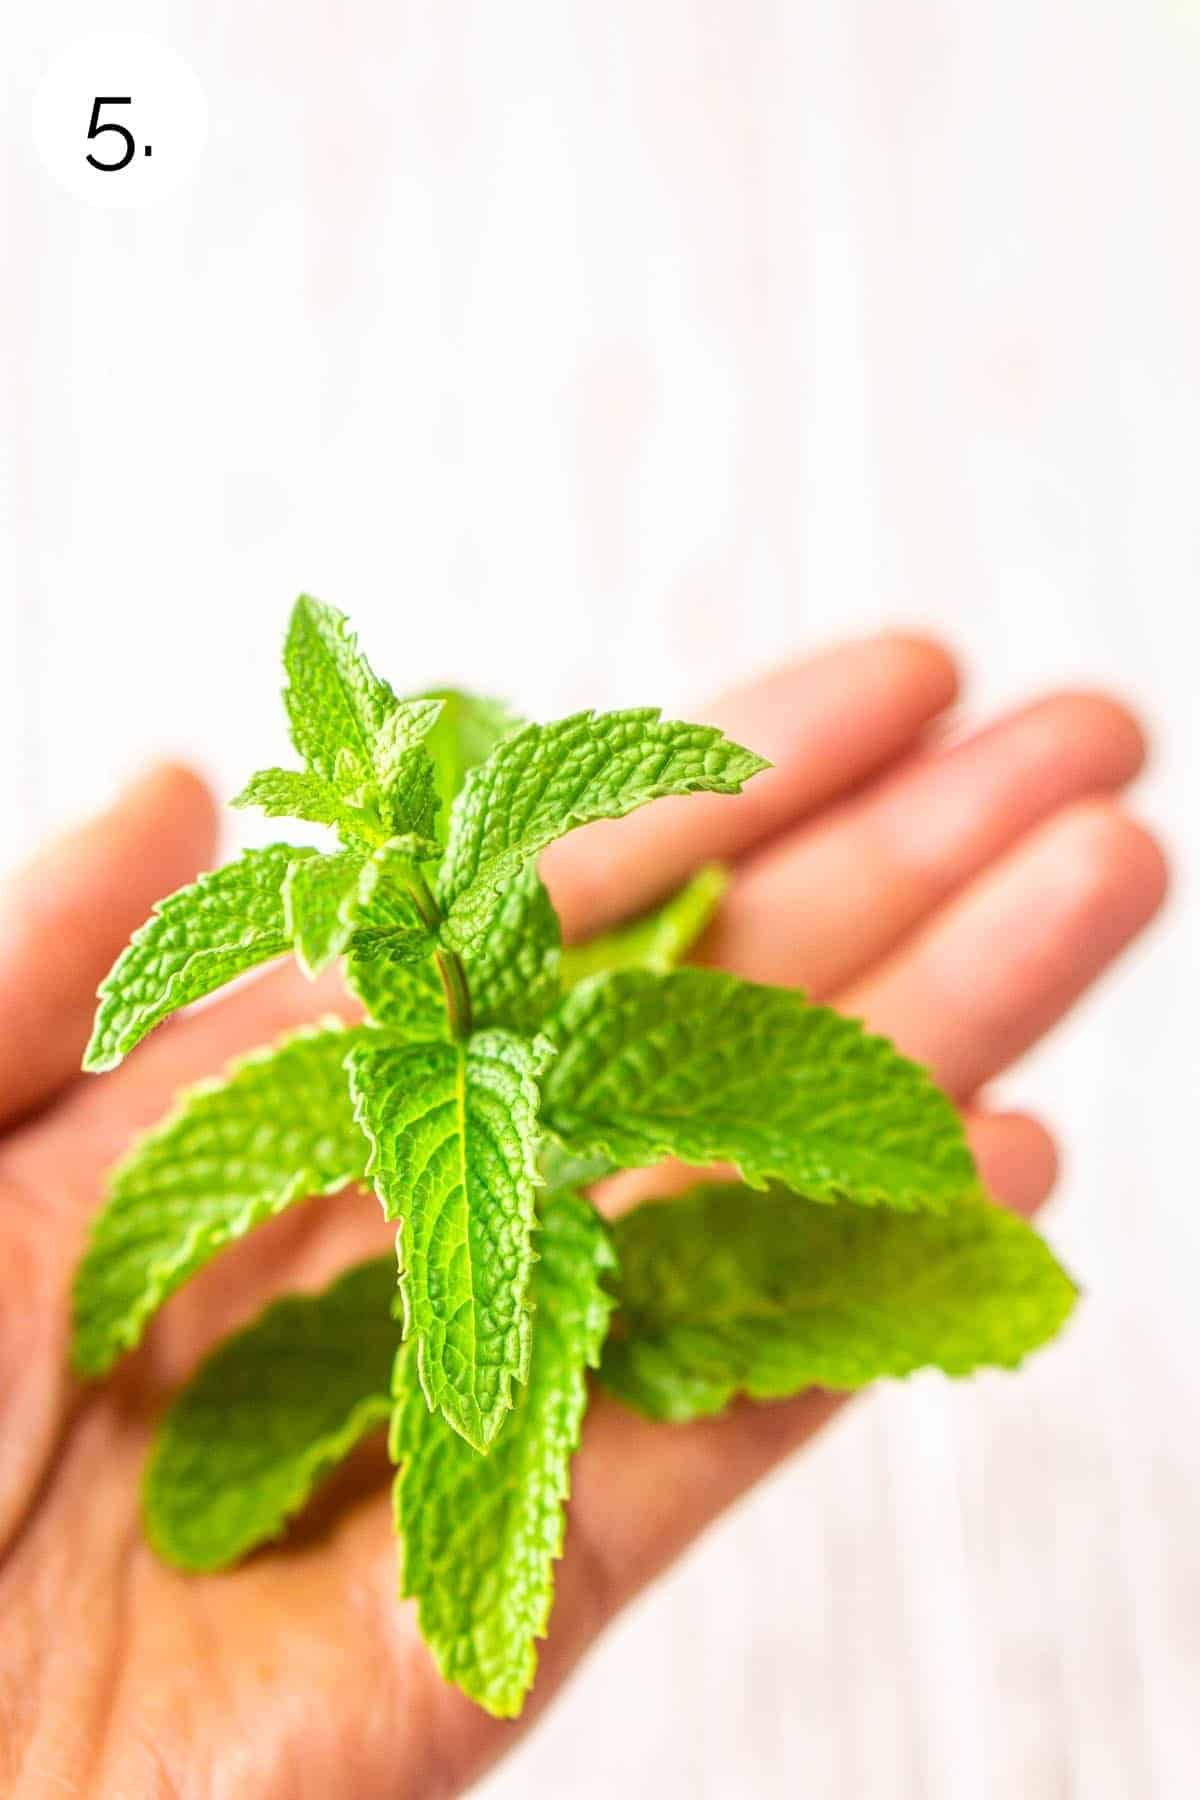 Placing the mint in the palm of a hand before garnishing.